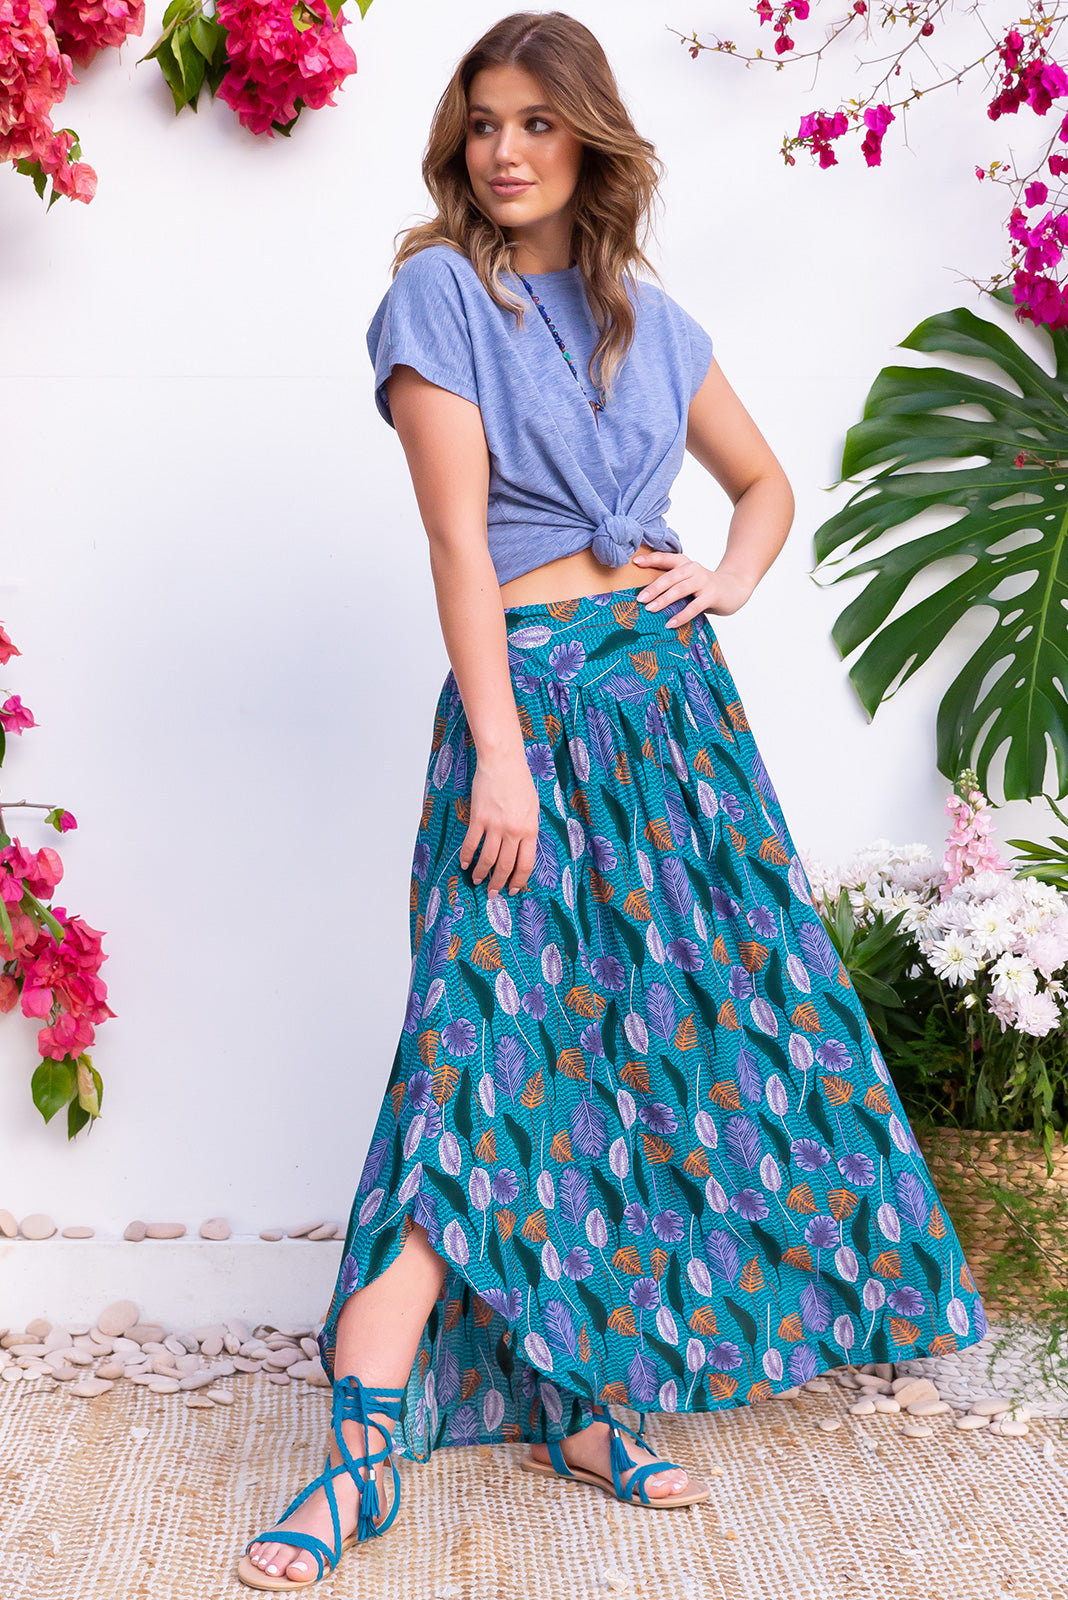 Sails Capilano Teal Maxi Skirt is a scooped hem and flowy maxi length bohemian skirt. With a multicoloured leaf pattern on a teal base. Very tropical and fresh for Spring. 100% Viscose.